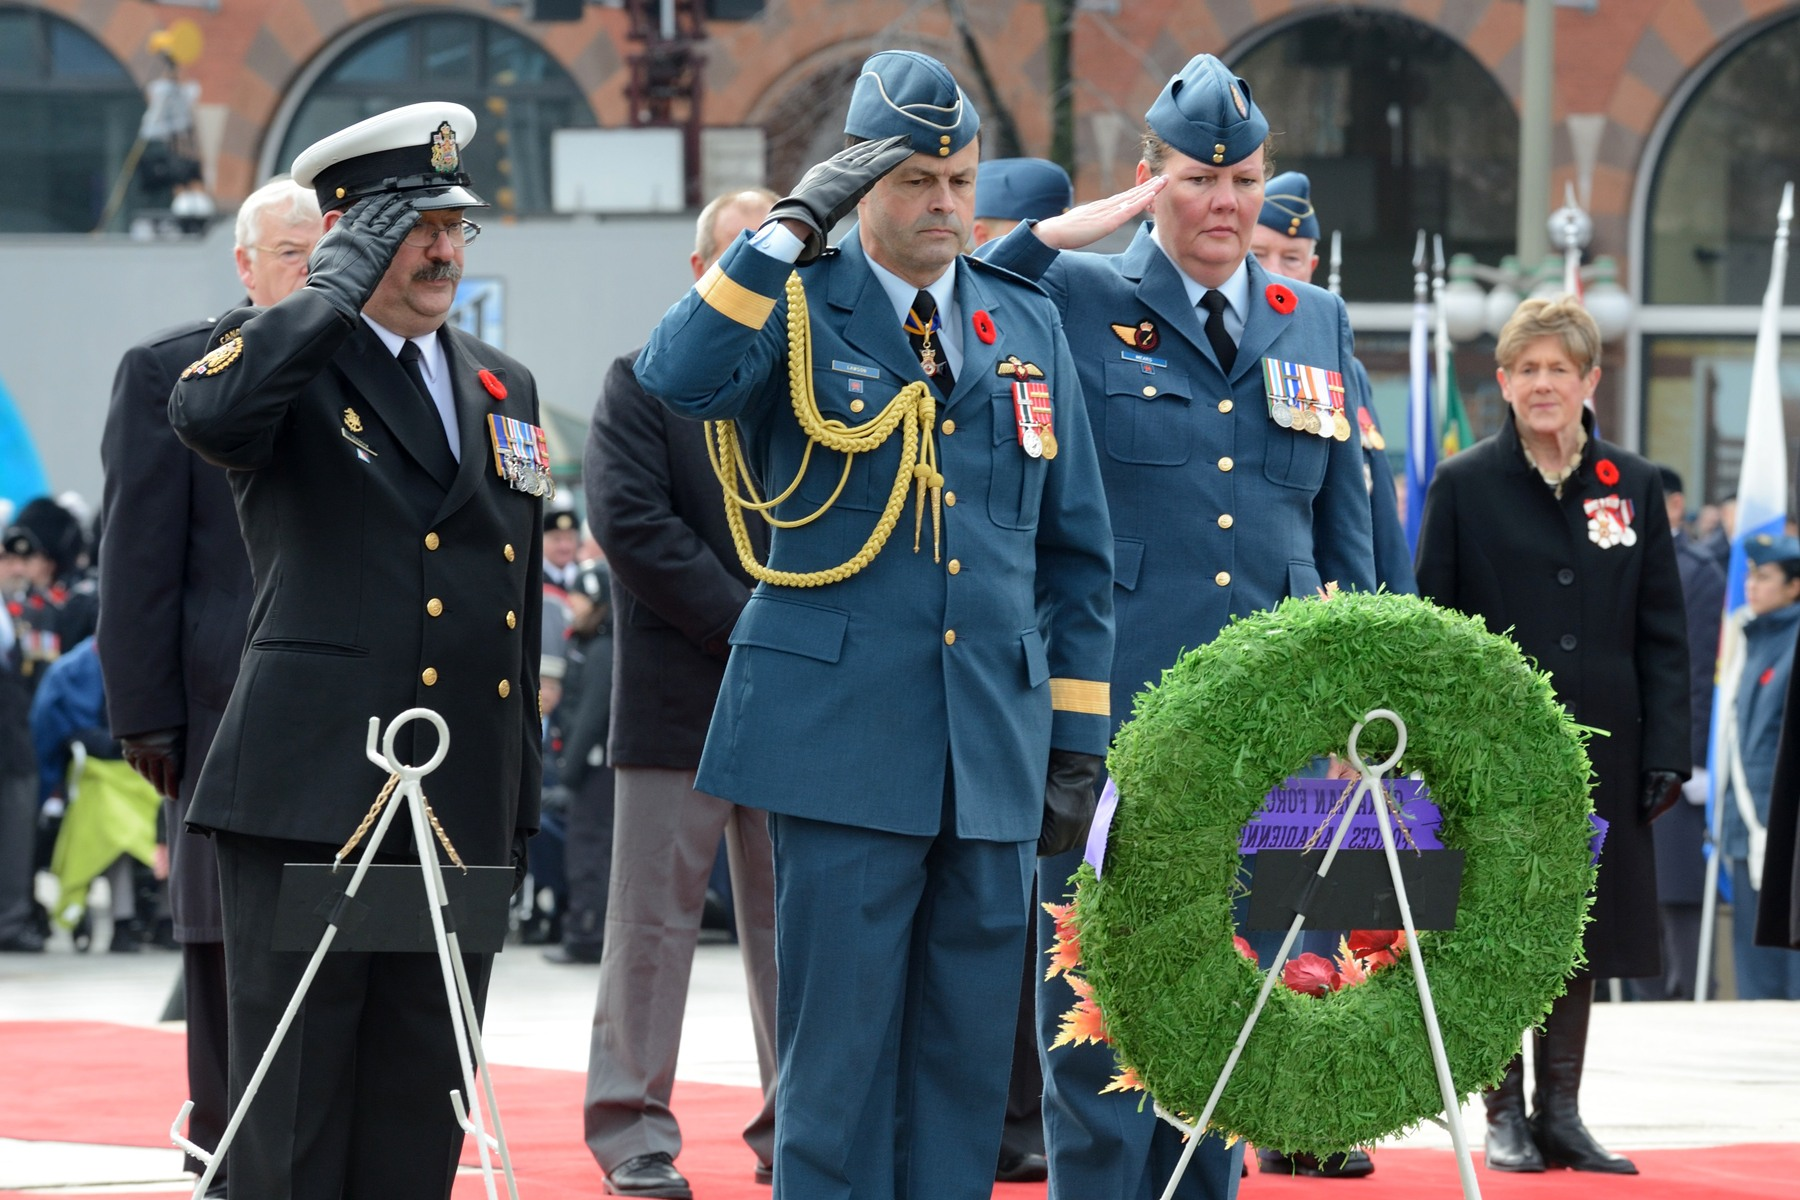 The newly appointed Chief of the Defense Staff General Tom Lawson also laid a wreath.